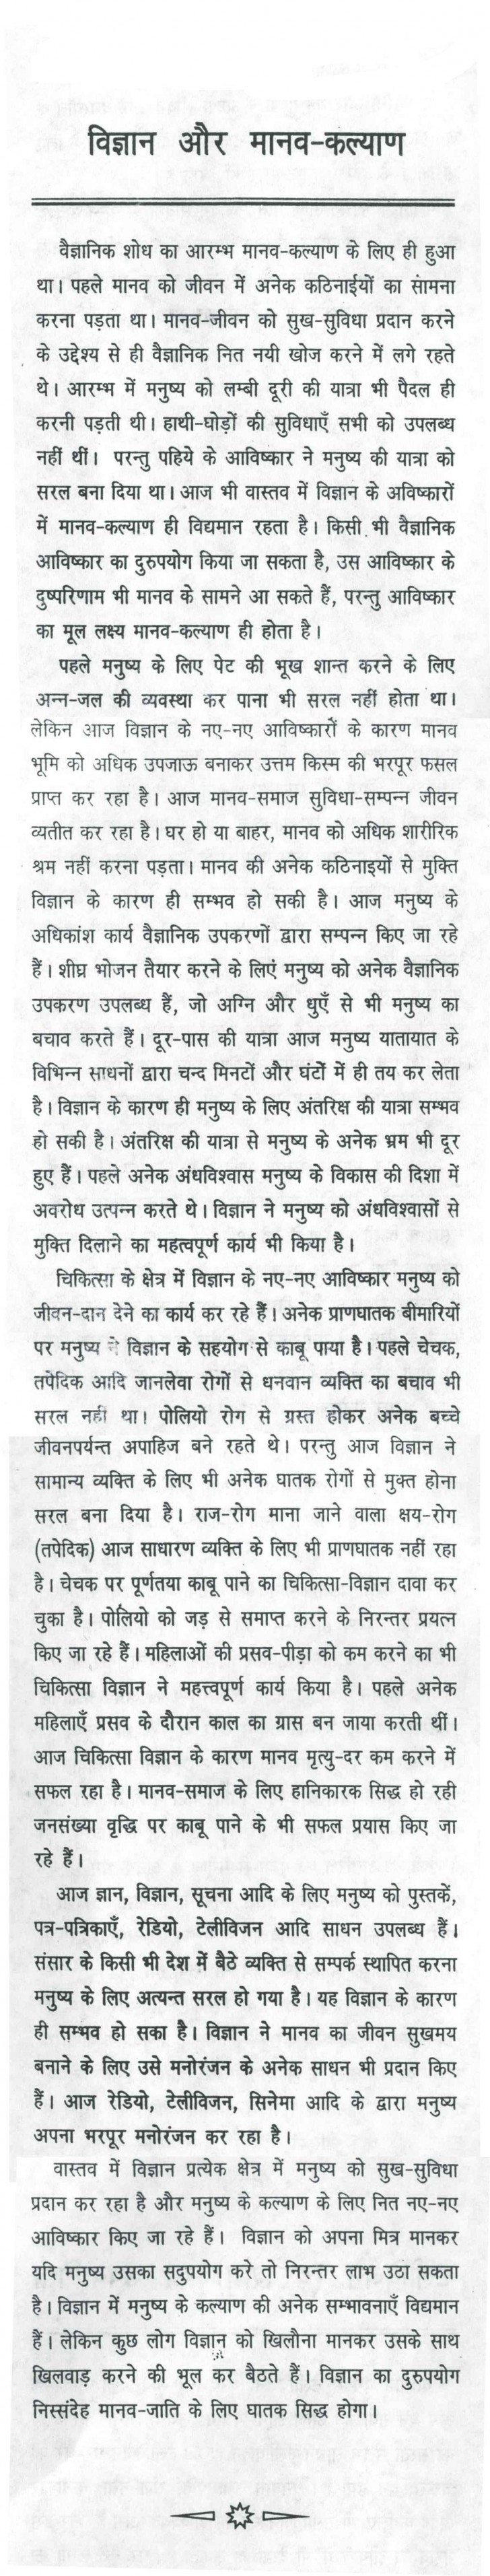 019 Advantage And Disadvantage Of Science Essay Example Benefit Education On Importance In Hindi Advantages Disadvantages Higher 10061 Benefits Shocking Pdf English 728